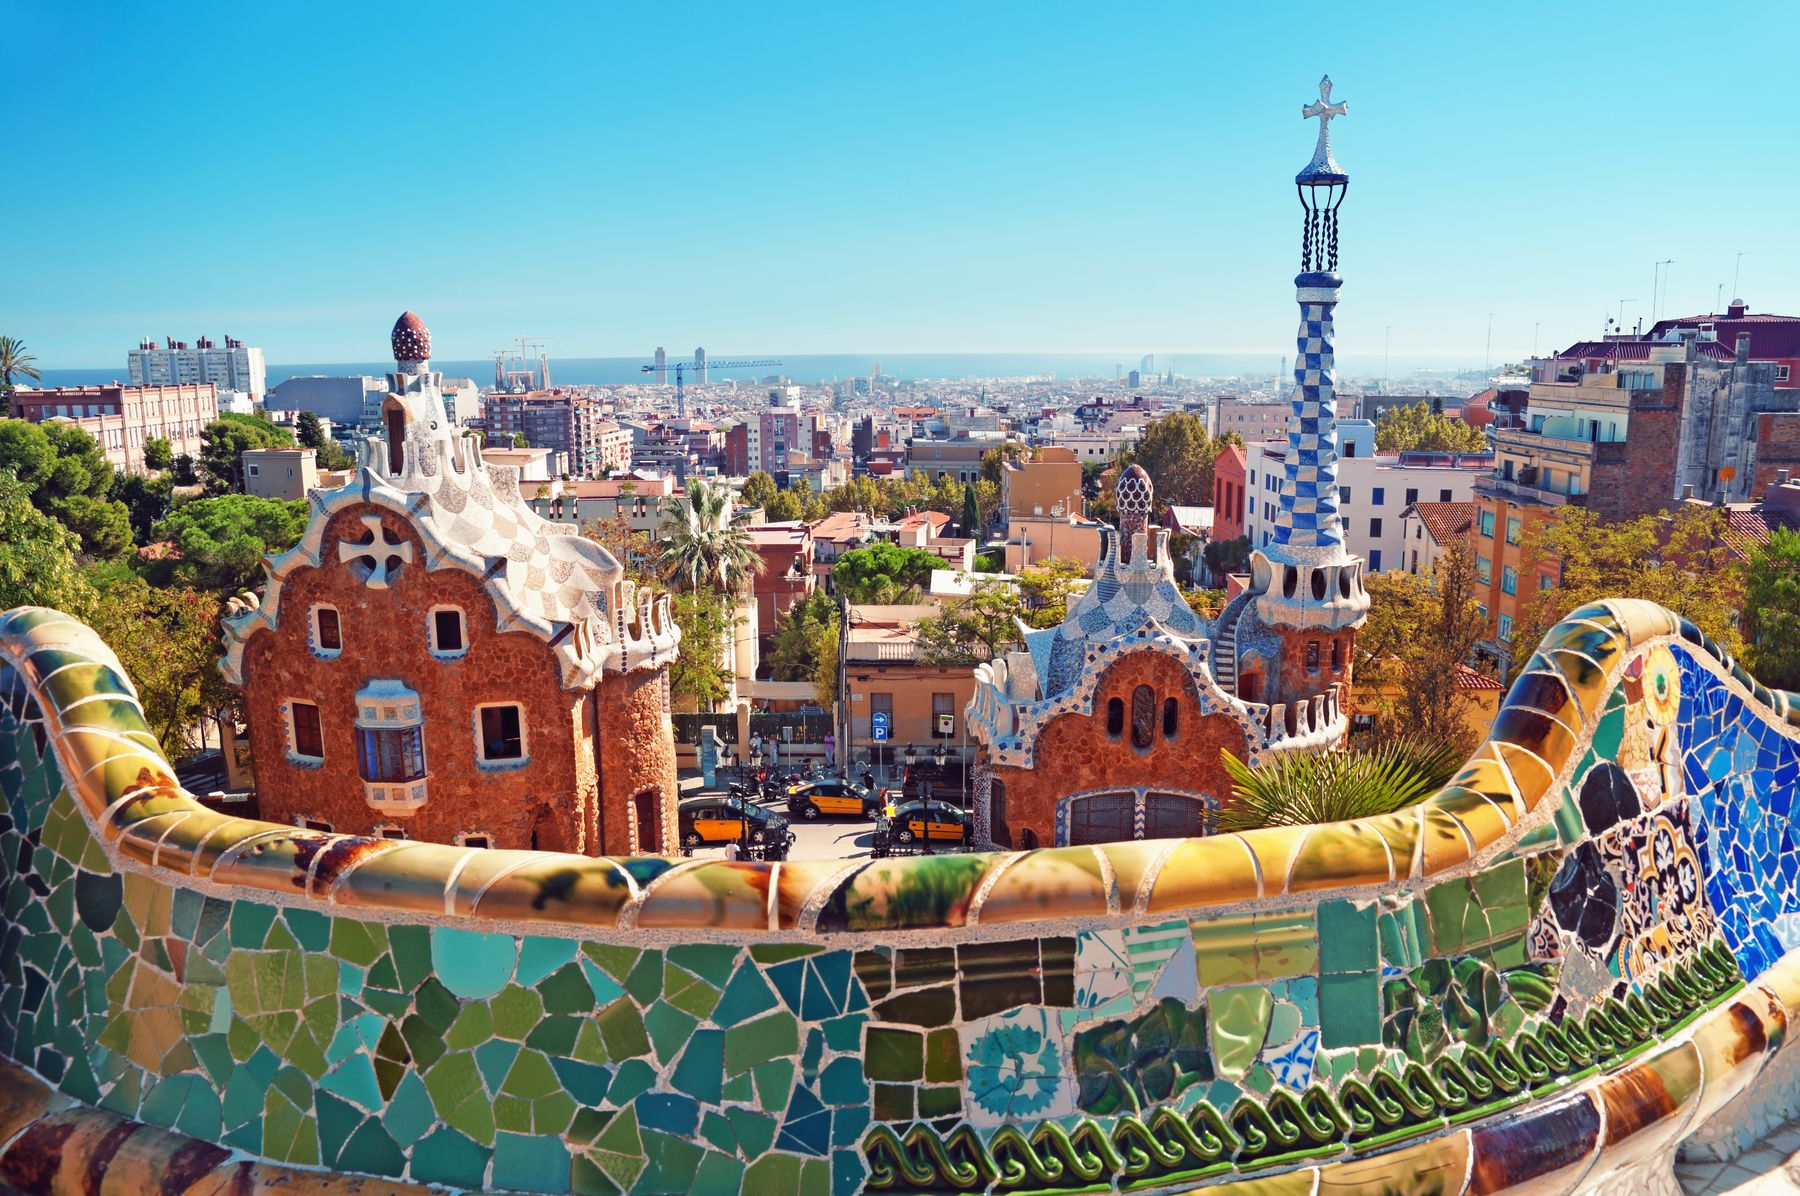 View overlooking Barcelona from Park Güell with beautiful blue and green mosaic pattern